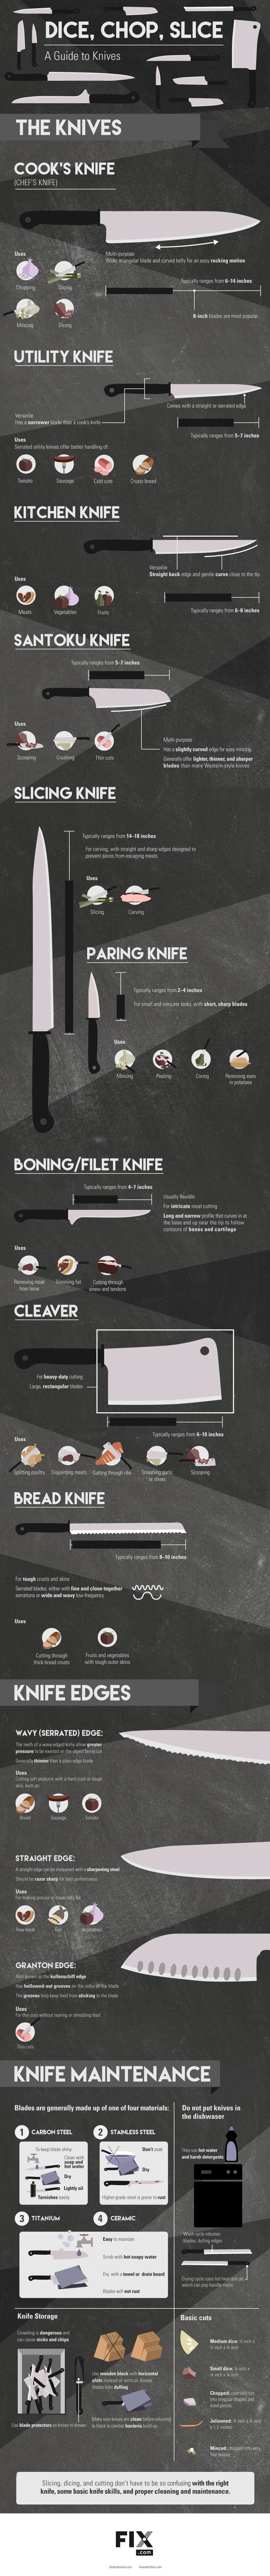 the complete kitchen knife guide infographic kitchen knives